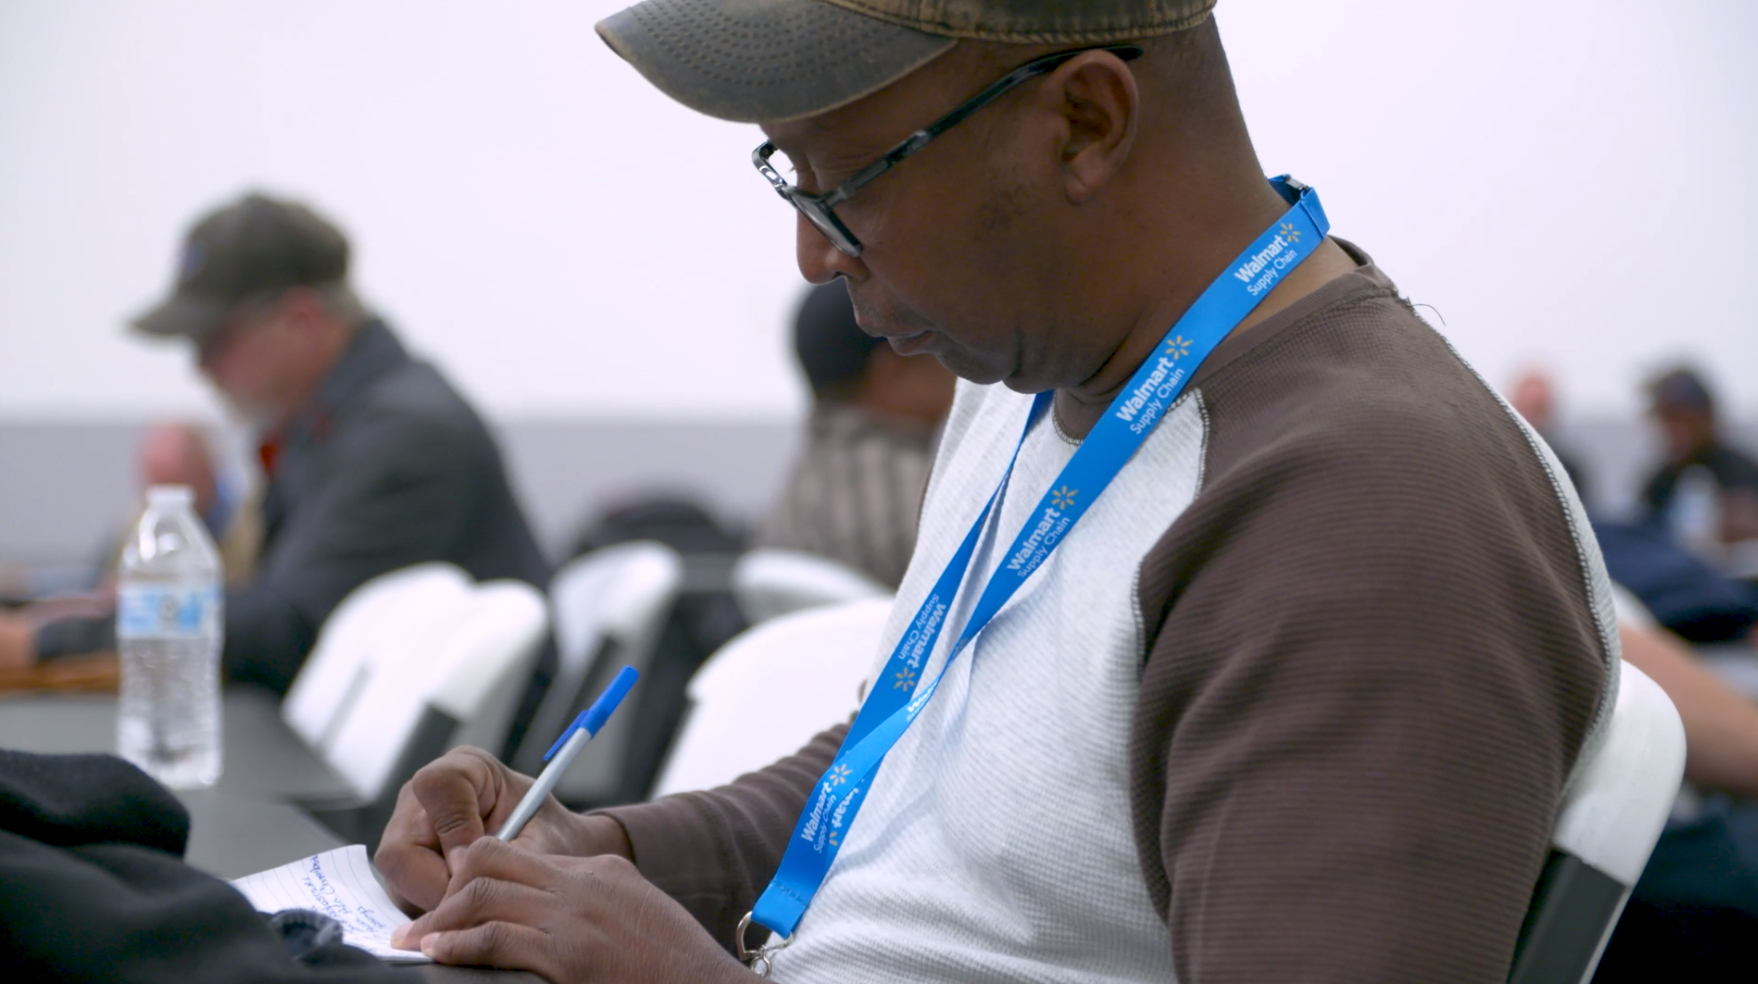 A new Walmart truck driver takes notes at an onboarding event